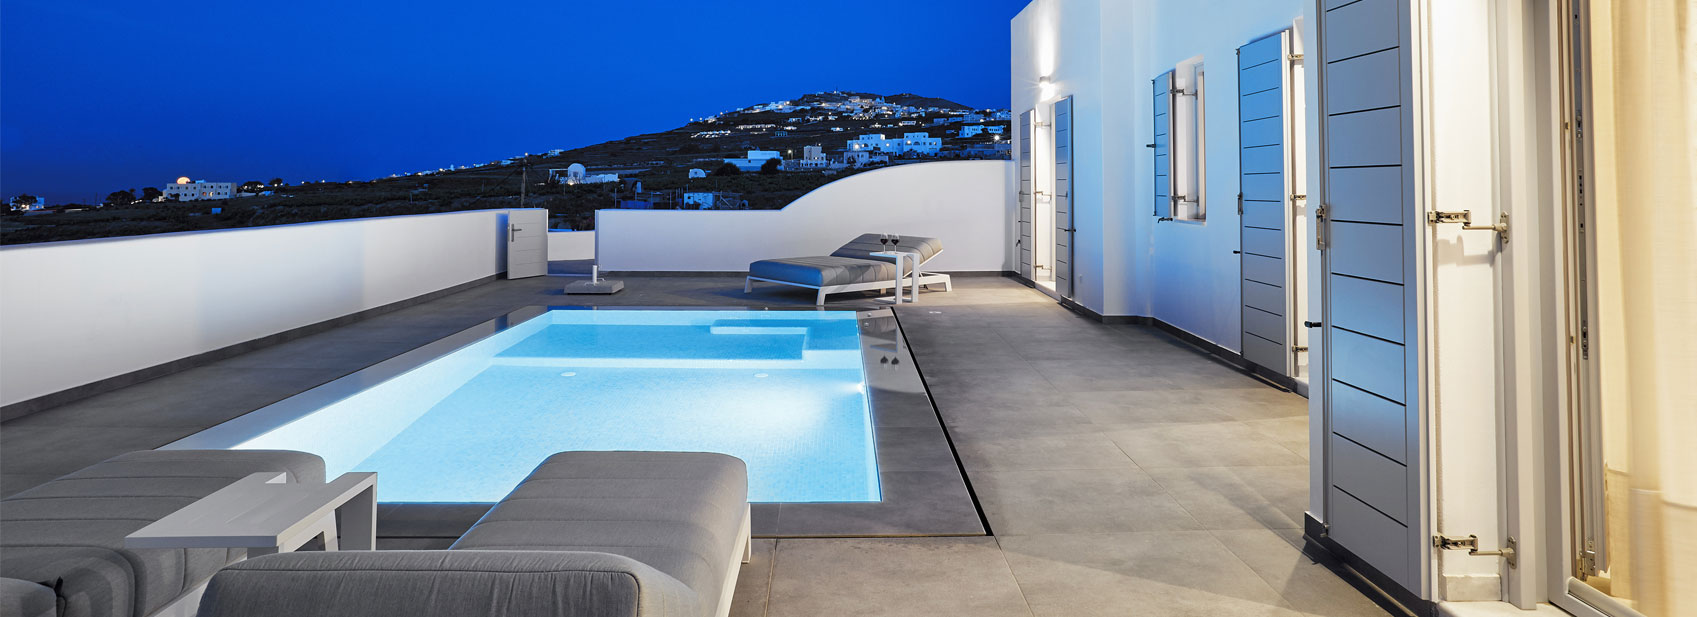 Santorini 5 star spa hotel De Sol | 5 star Accommodation in Santorini